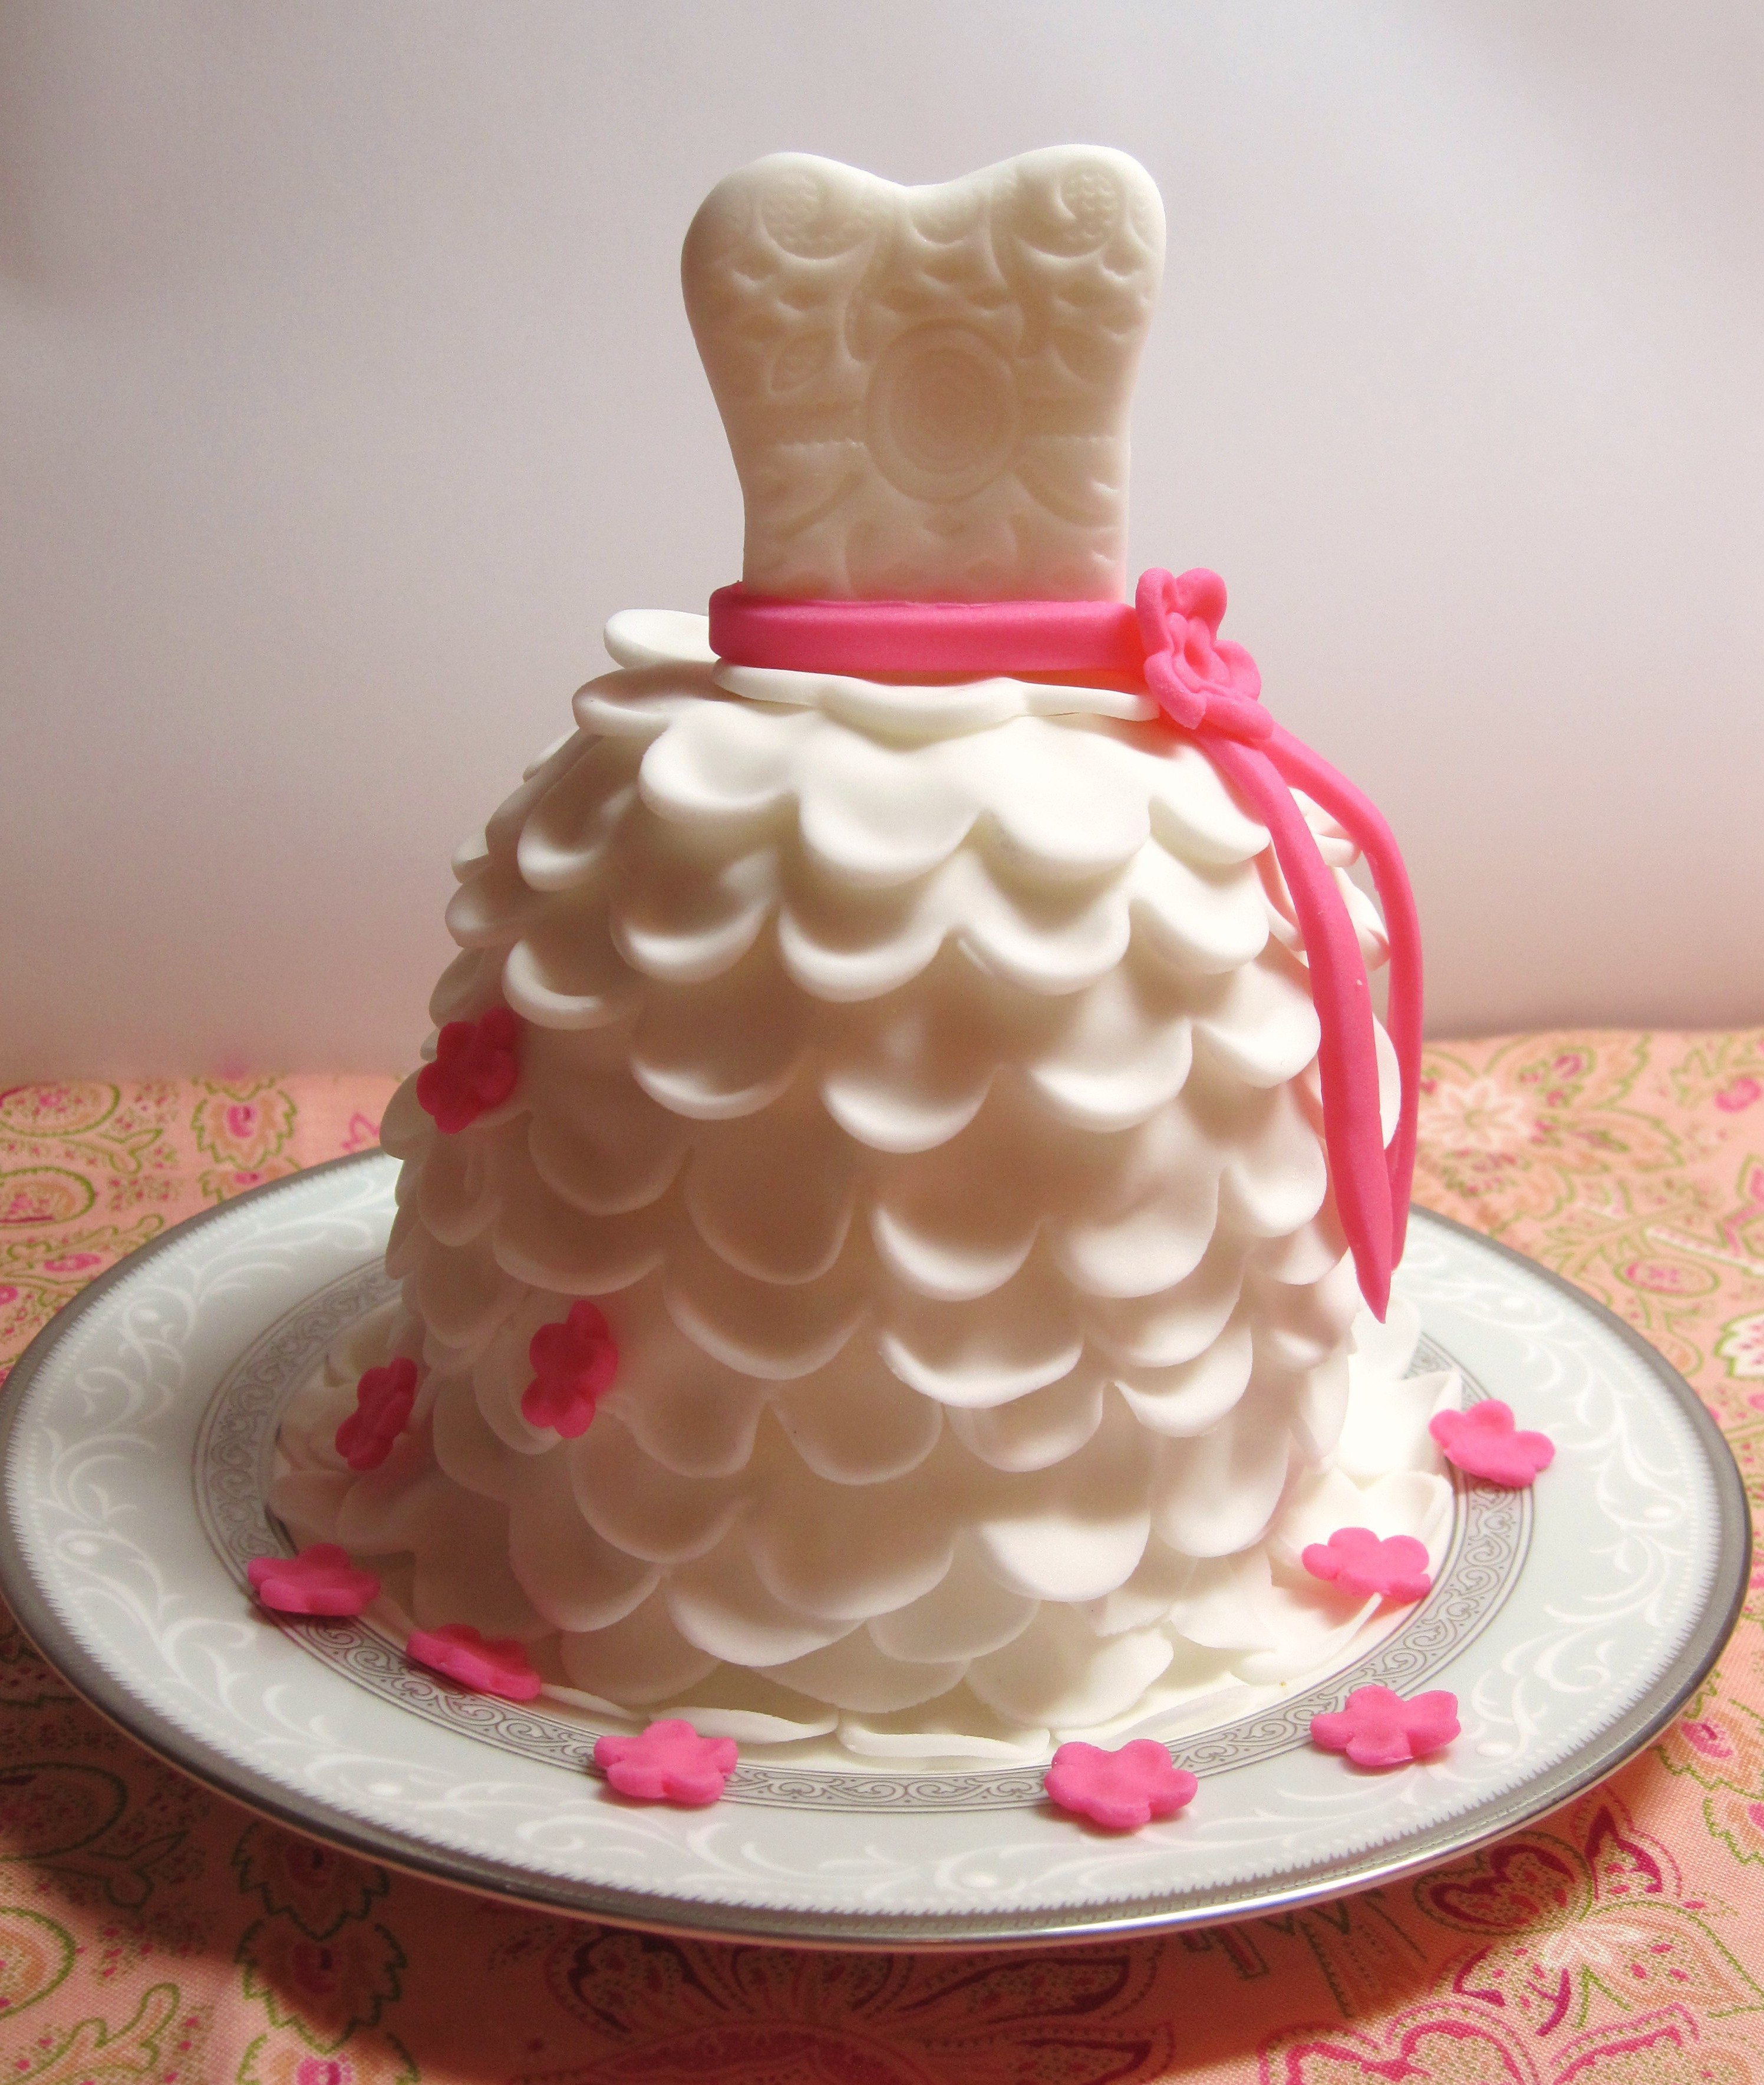 DIY How to Make Beautiful Wedding Dress Cupcakes with